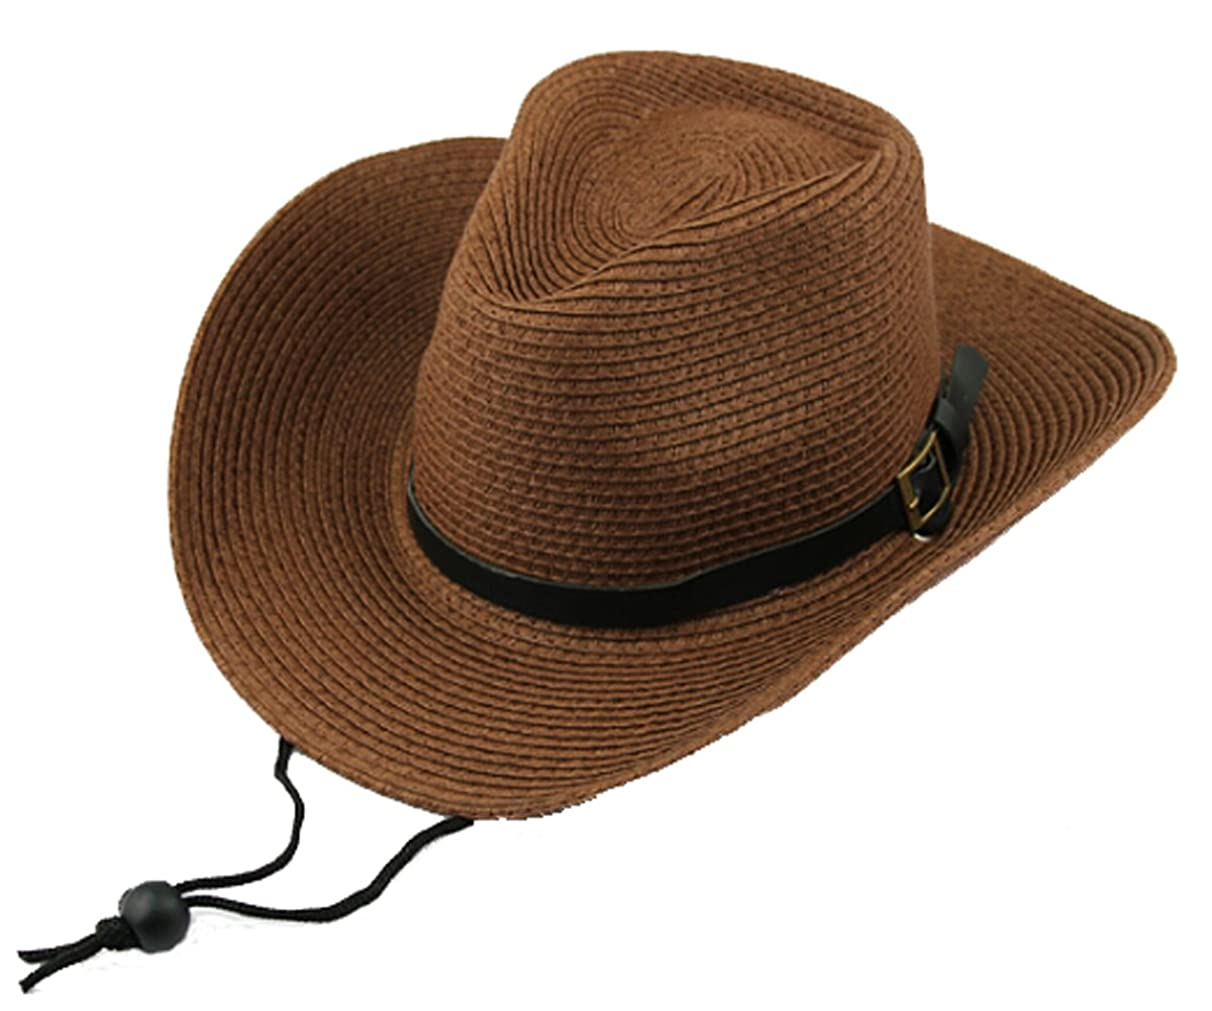 Men's Floppy Packable Straw Hat Beach Cap Classic Western Newsboy Cap Fedora Hat UPF 50+ Roll Up Foldable Large Brim Outback Sun Hat with Adjustable Chin Cord Strap Outdoor Fishing Cap Safari Hat